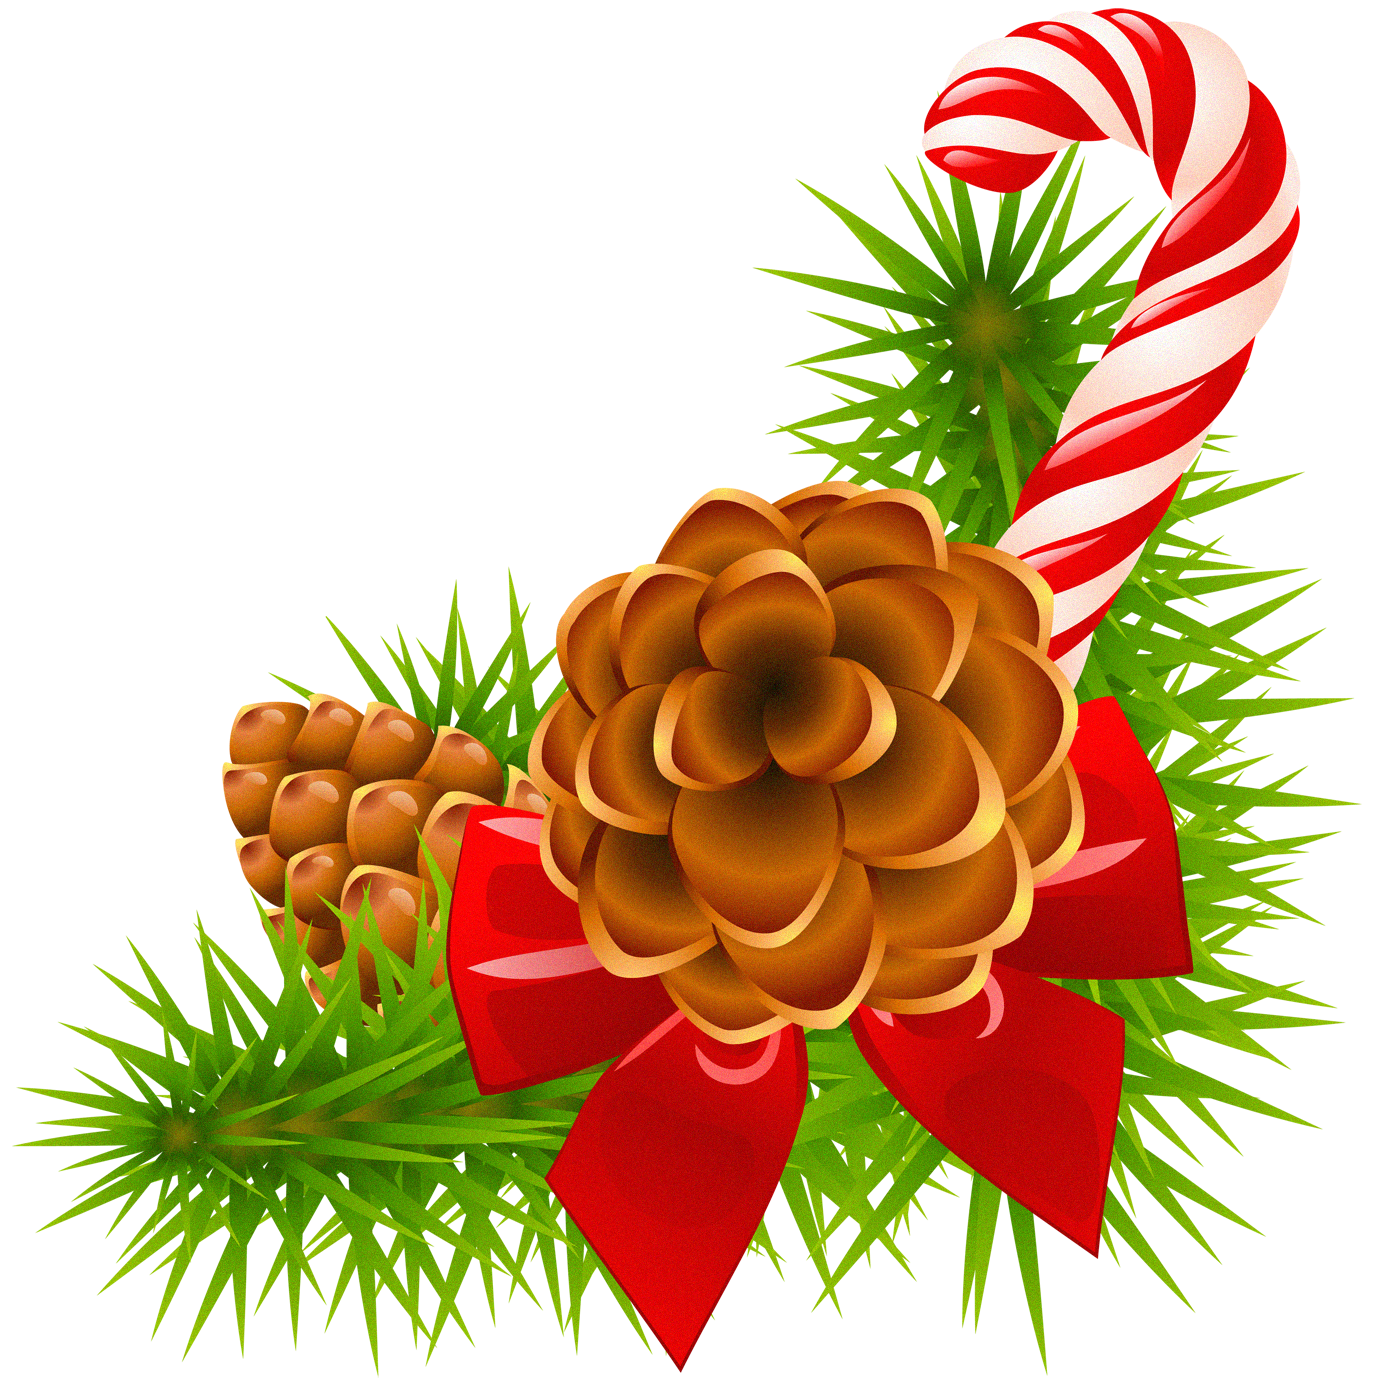 Christmas pinecone clipart image royalty free stock Christmas Pine Branch with Cones and Candy Cane Decor | Gallery ... image royalty free stock